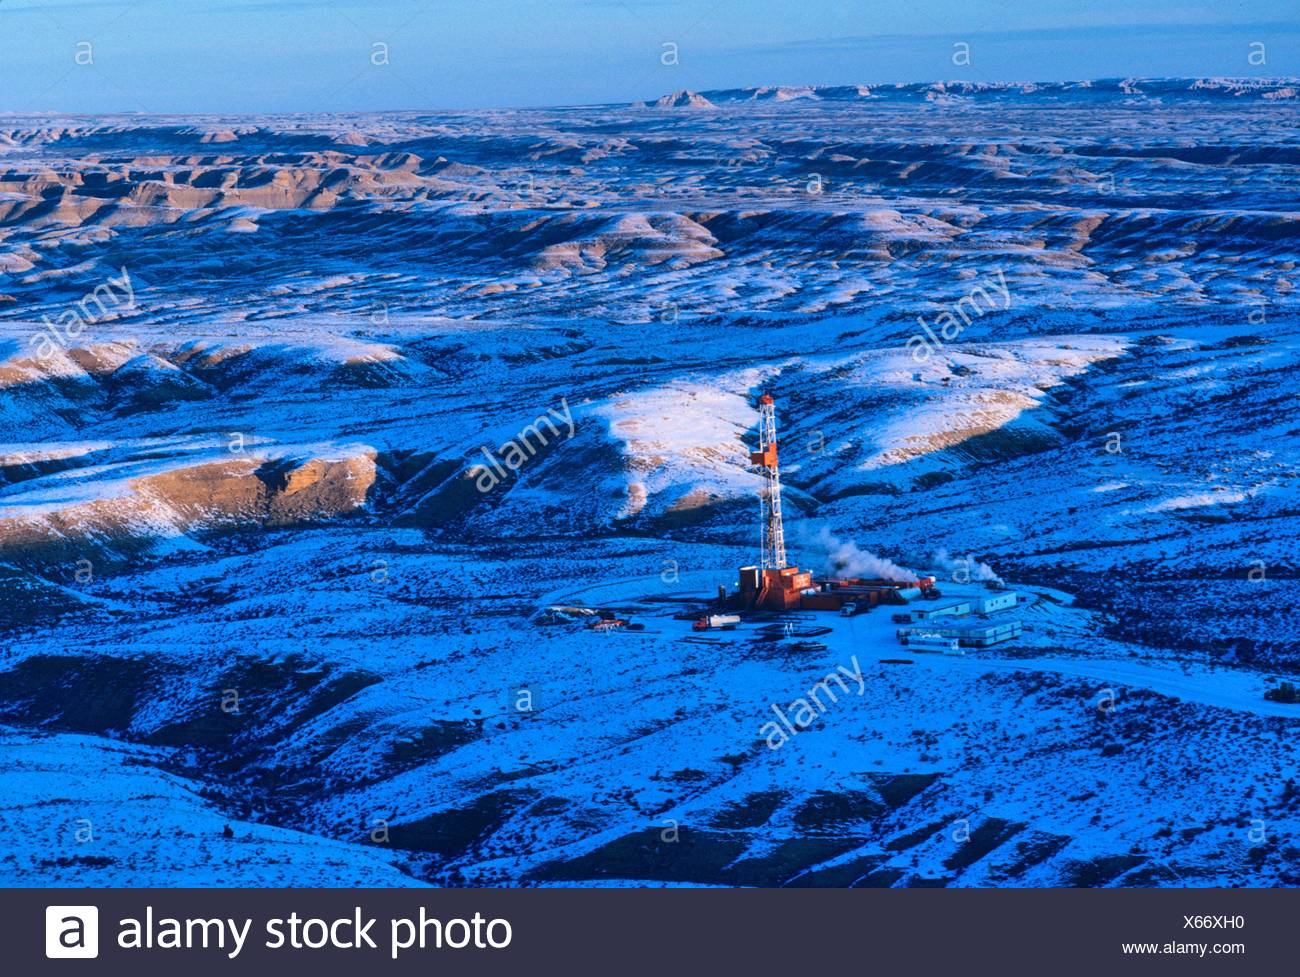 Onshore Oil Drilling Rig in Mountainous Snow Covered Terrain - Stock Image